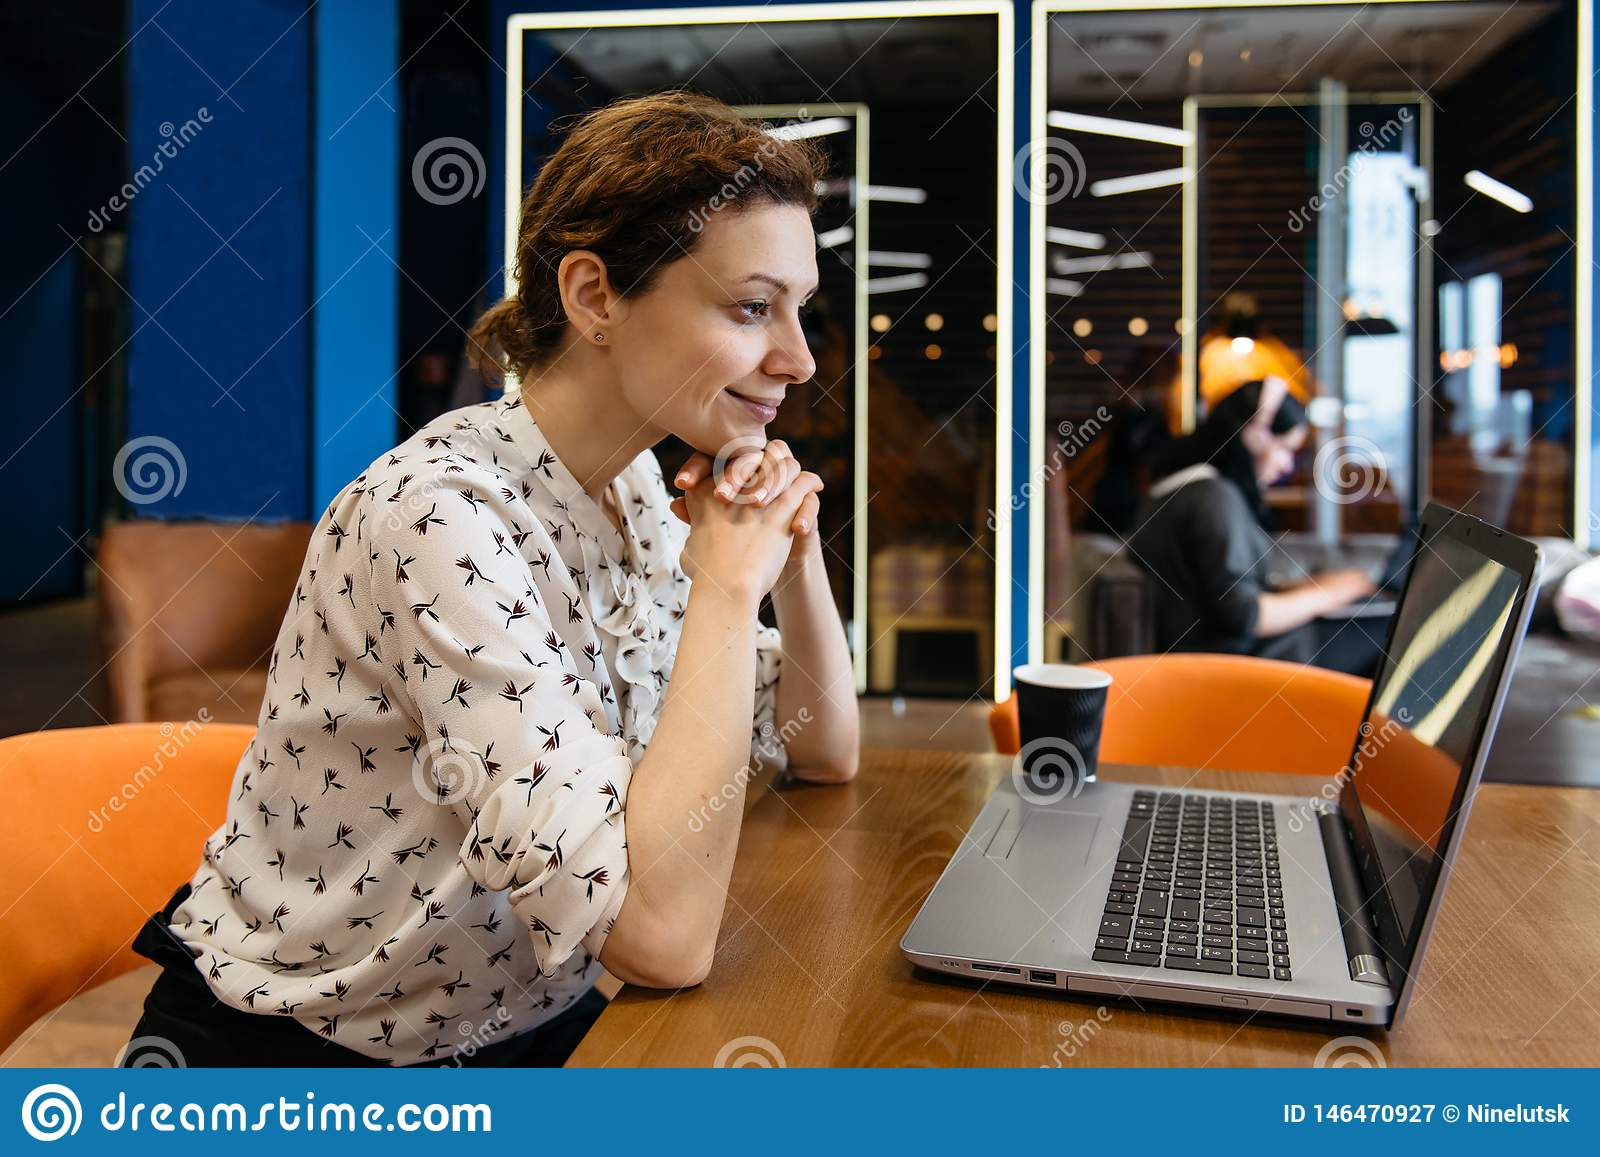 Beautiful Young Freelancer Woman Using Laptop Computer Sitting At Cafe Table. Happy Smiling Girl Working Online Or Studying And